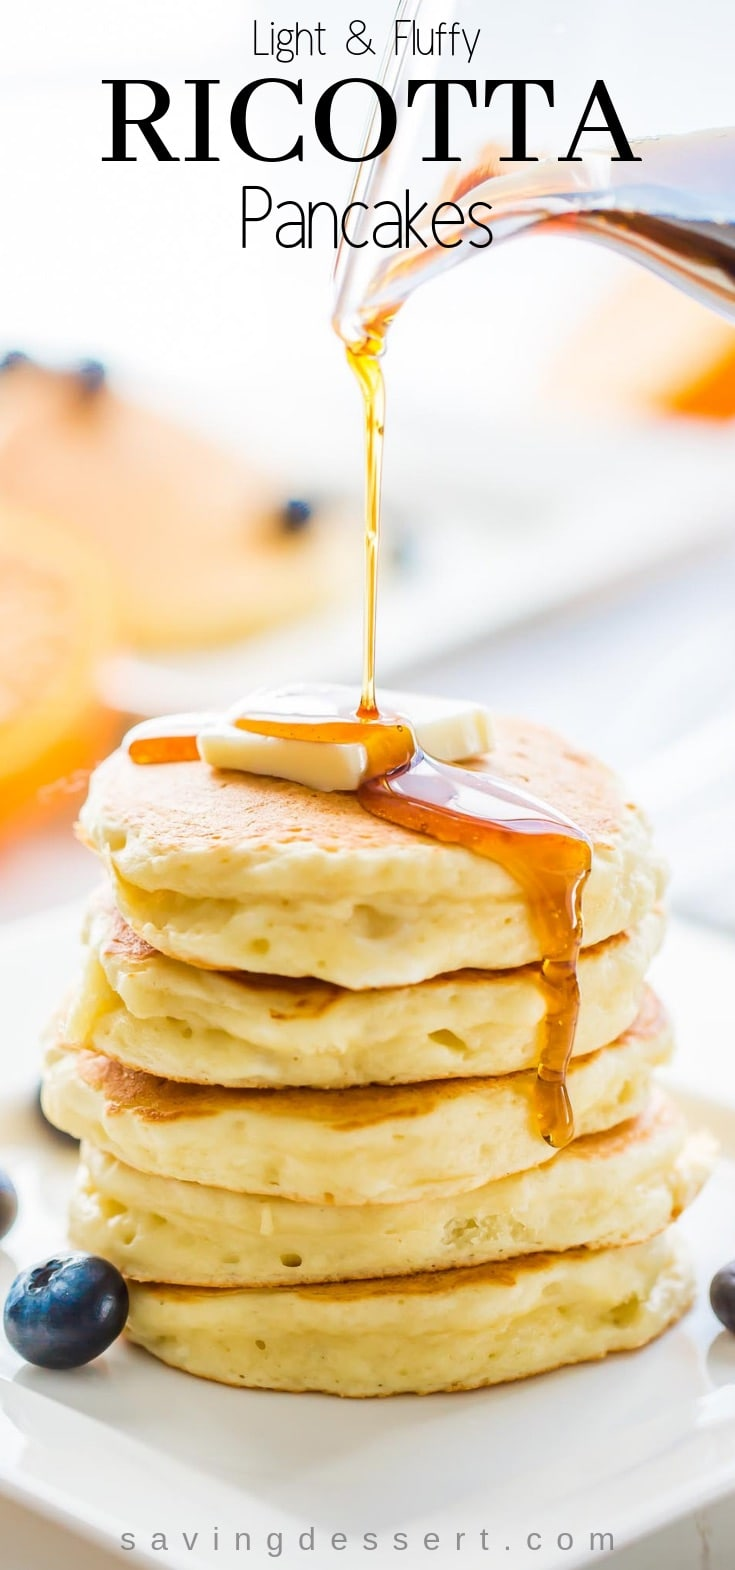 Light & fluffy Ricotta Pancakes with hints of lemon and a fantastic texture to soak up a little syrup. #pancakes #ricotta #ricottapancakes #easypancakes #breakfast #brunch #mothersday #weekend